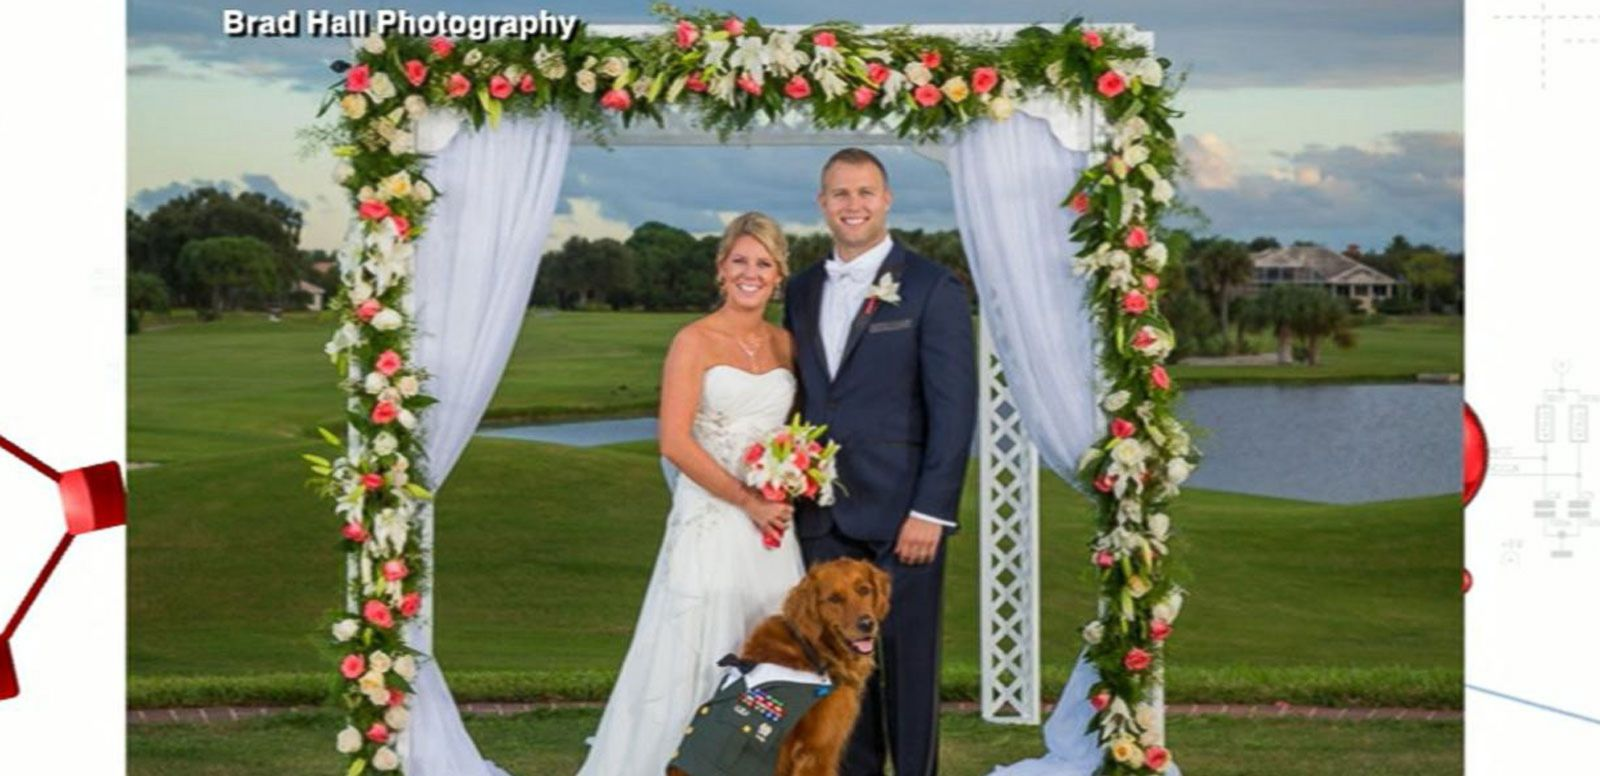 VIDEO: Wounded Veteran Marries, Service Dog Bears the Ring